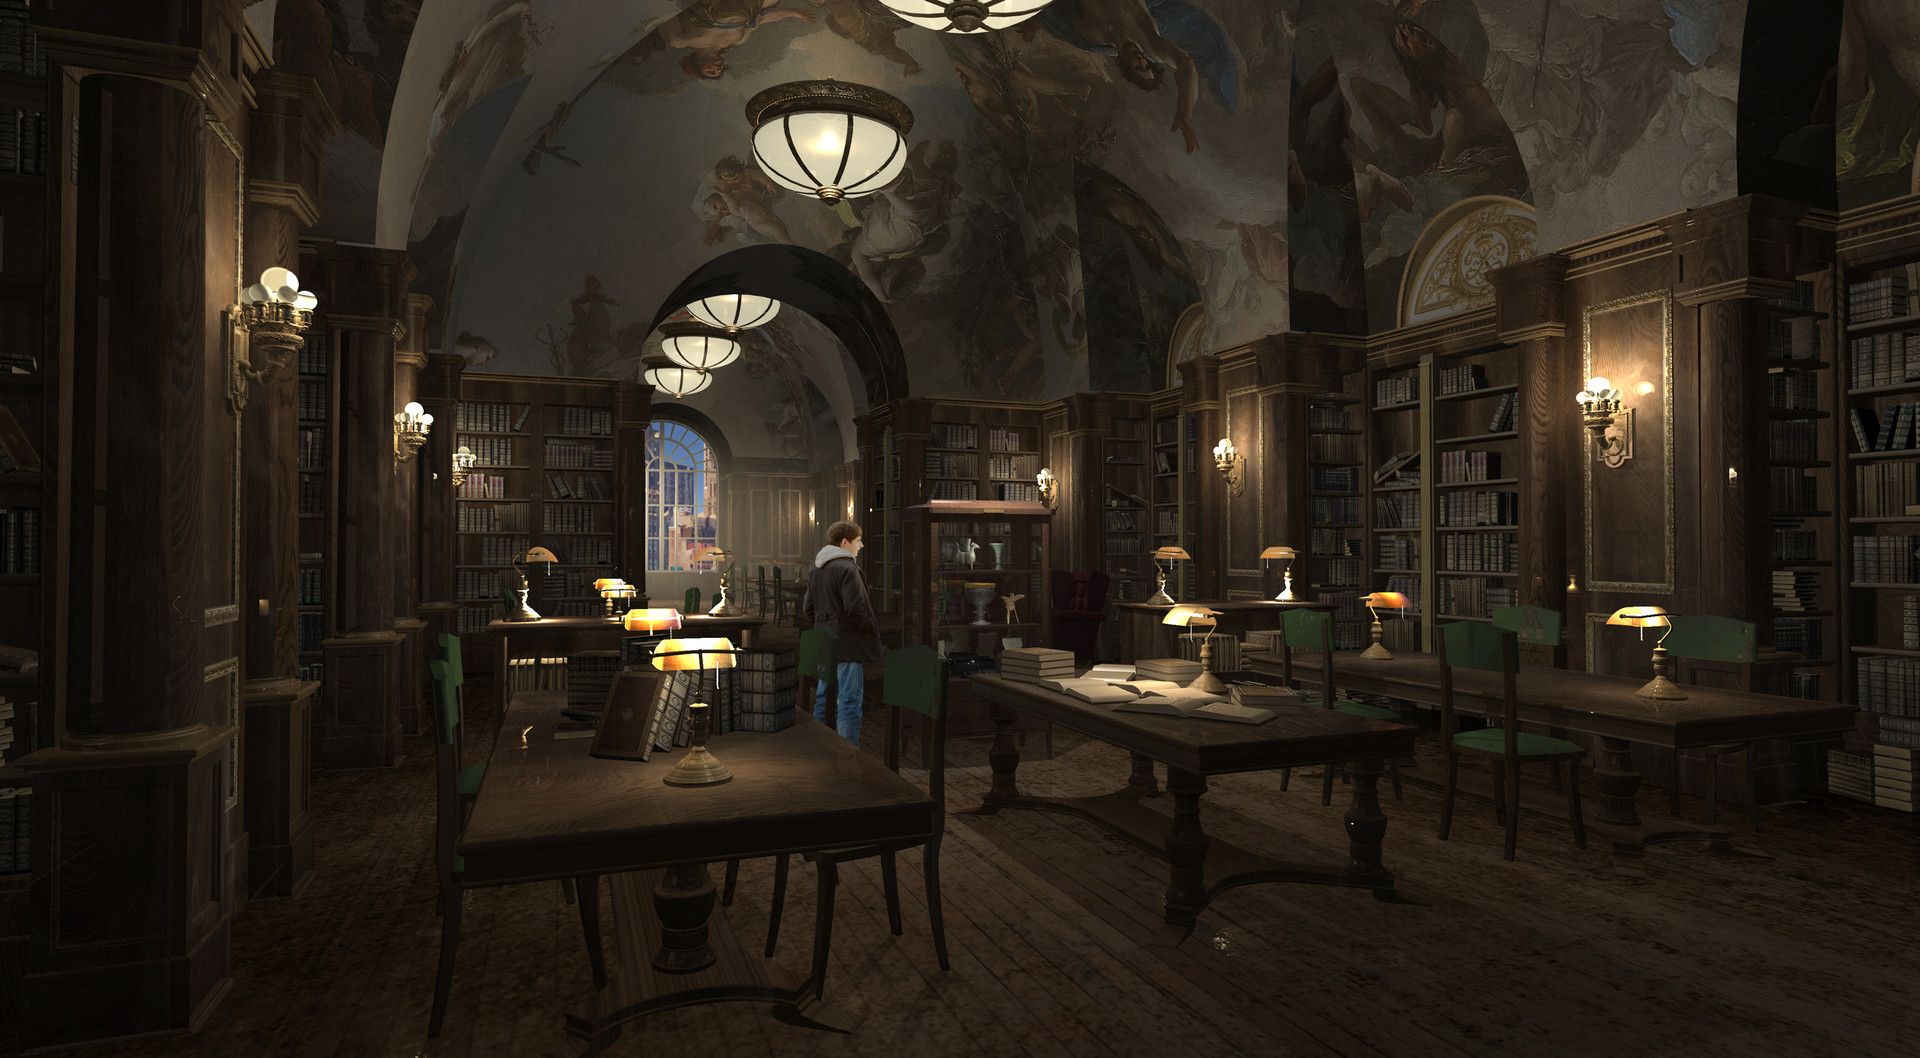 2D / 3D Interior New York Library for Once Upon a Time Season 6